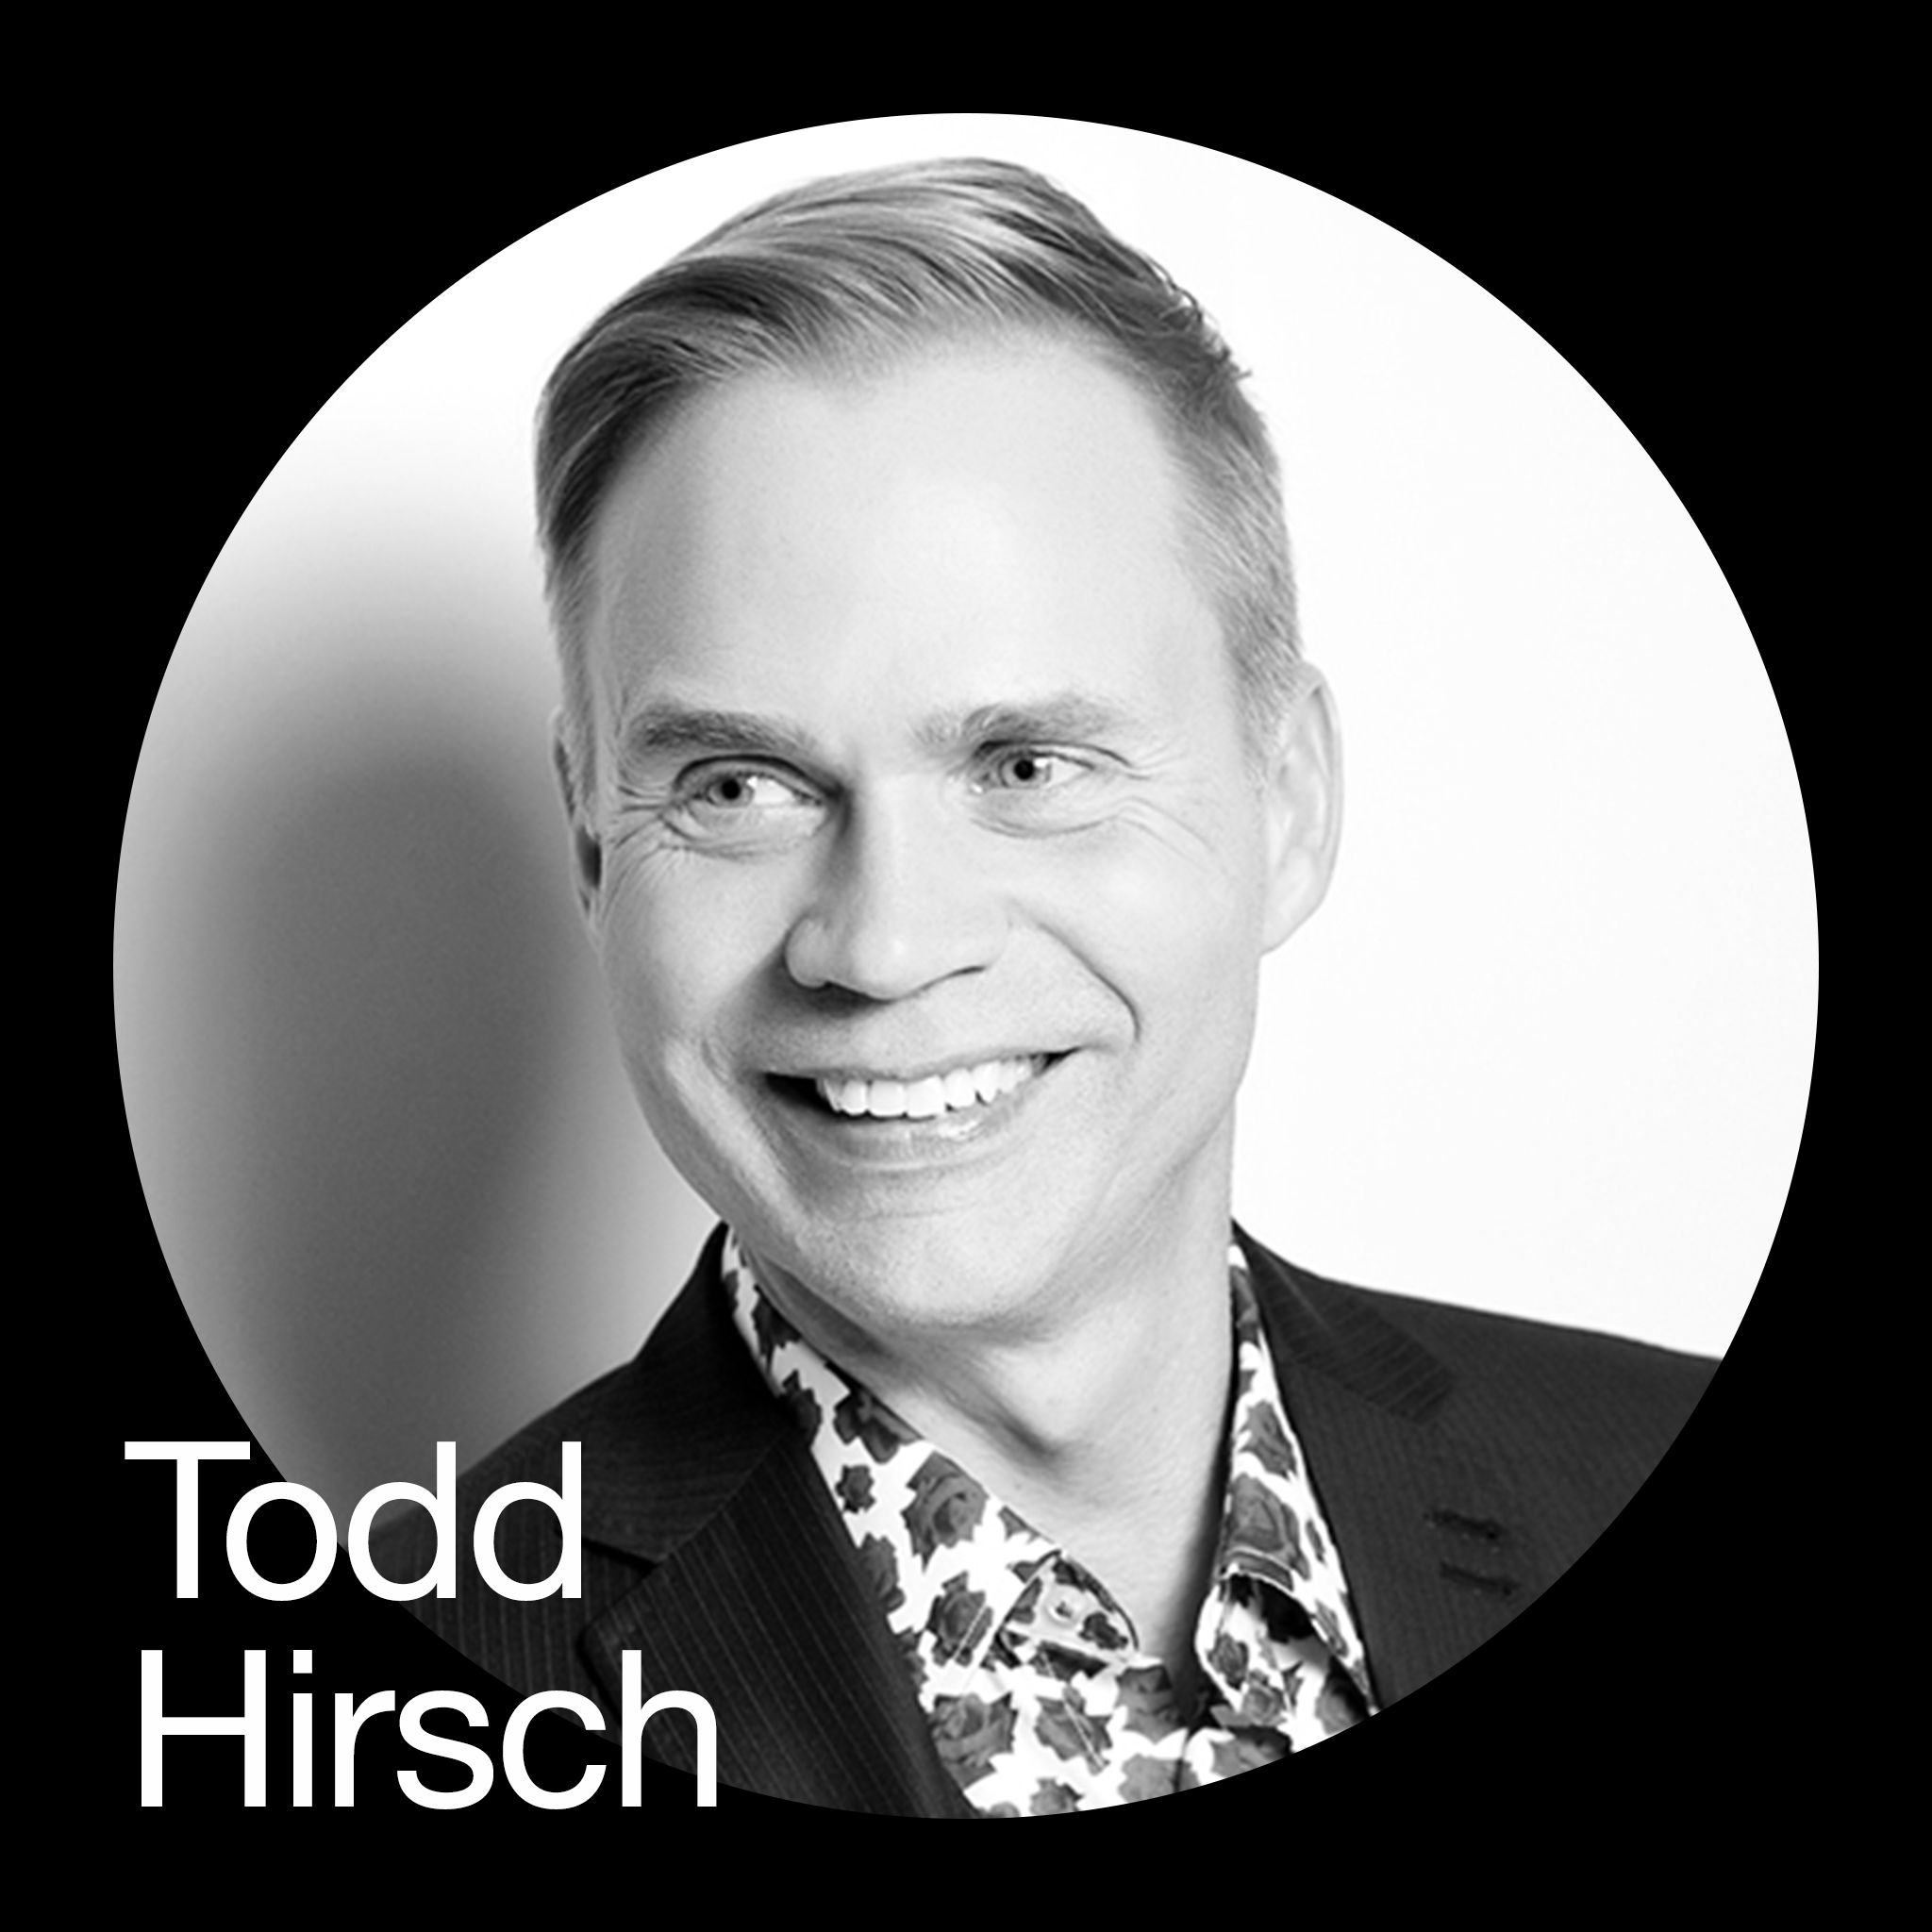 Todd Hirsch | The Economics of Living in Community